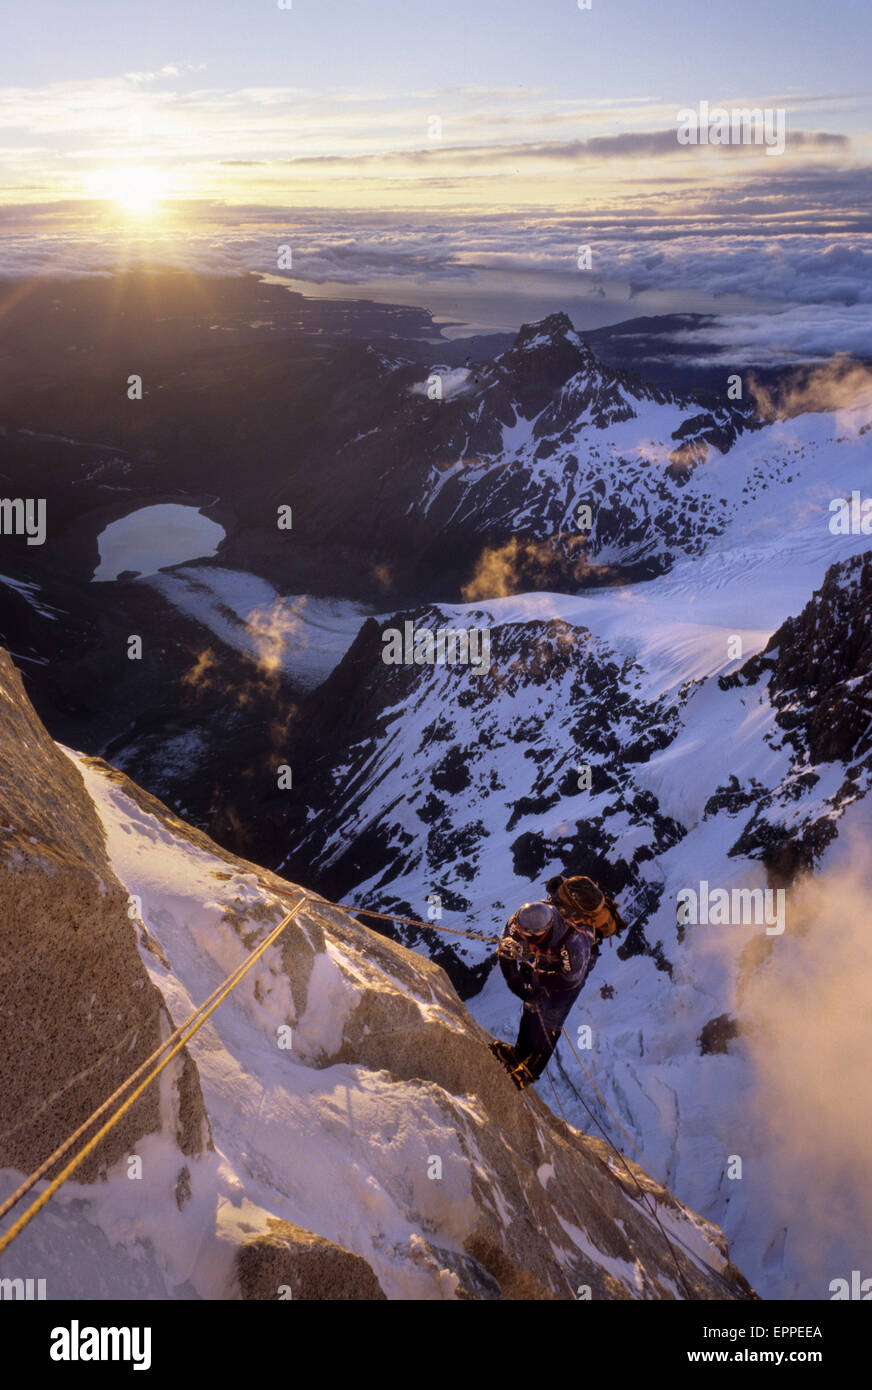 A climber rappels down Cerro Torre's south east ridge at dawn, after an ascent of that peak, in Argentine Patagonia Stock Photo